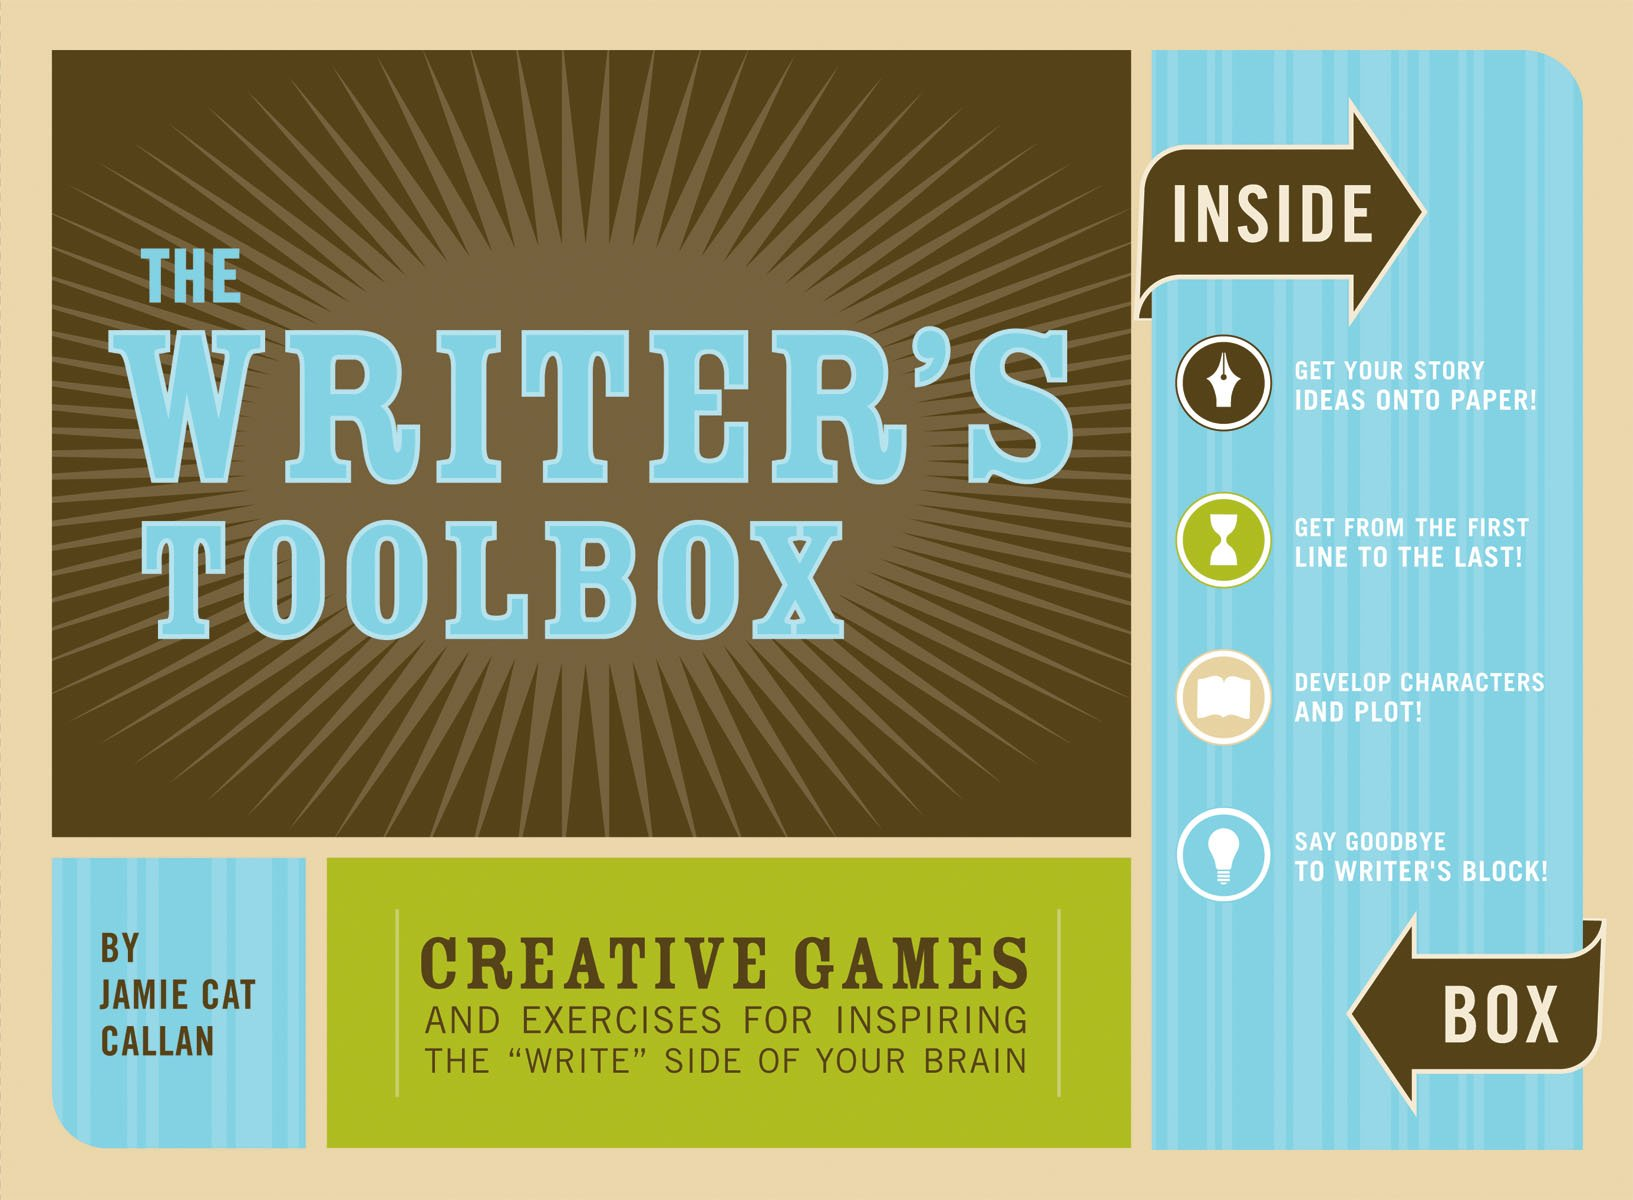 The Writer's Toolbox: Creative Games and Exercises for Inspiring the 'Write' Side of Your   Brain by Callan, Jamie Cat